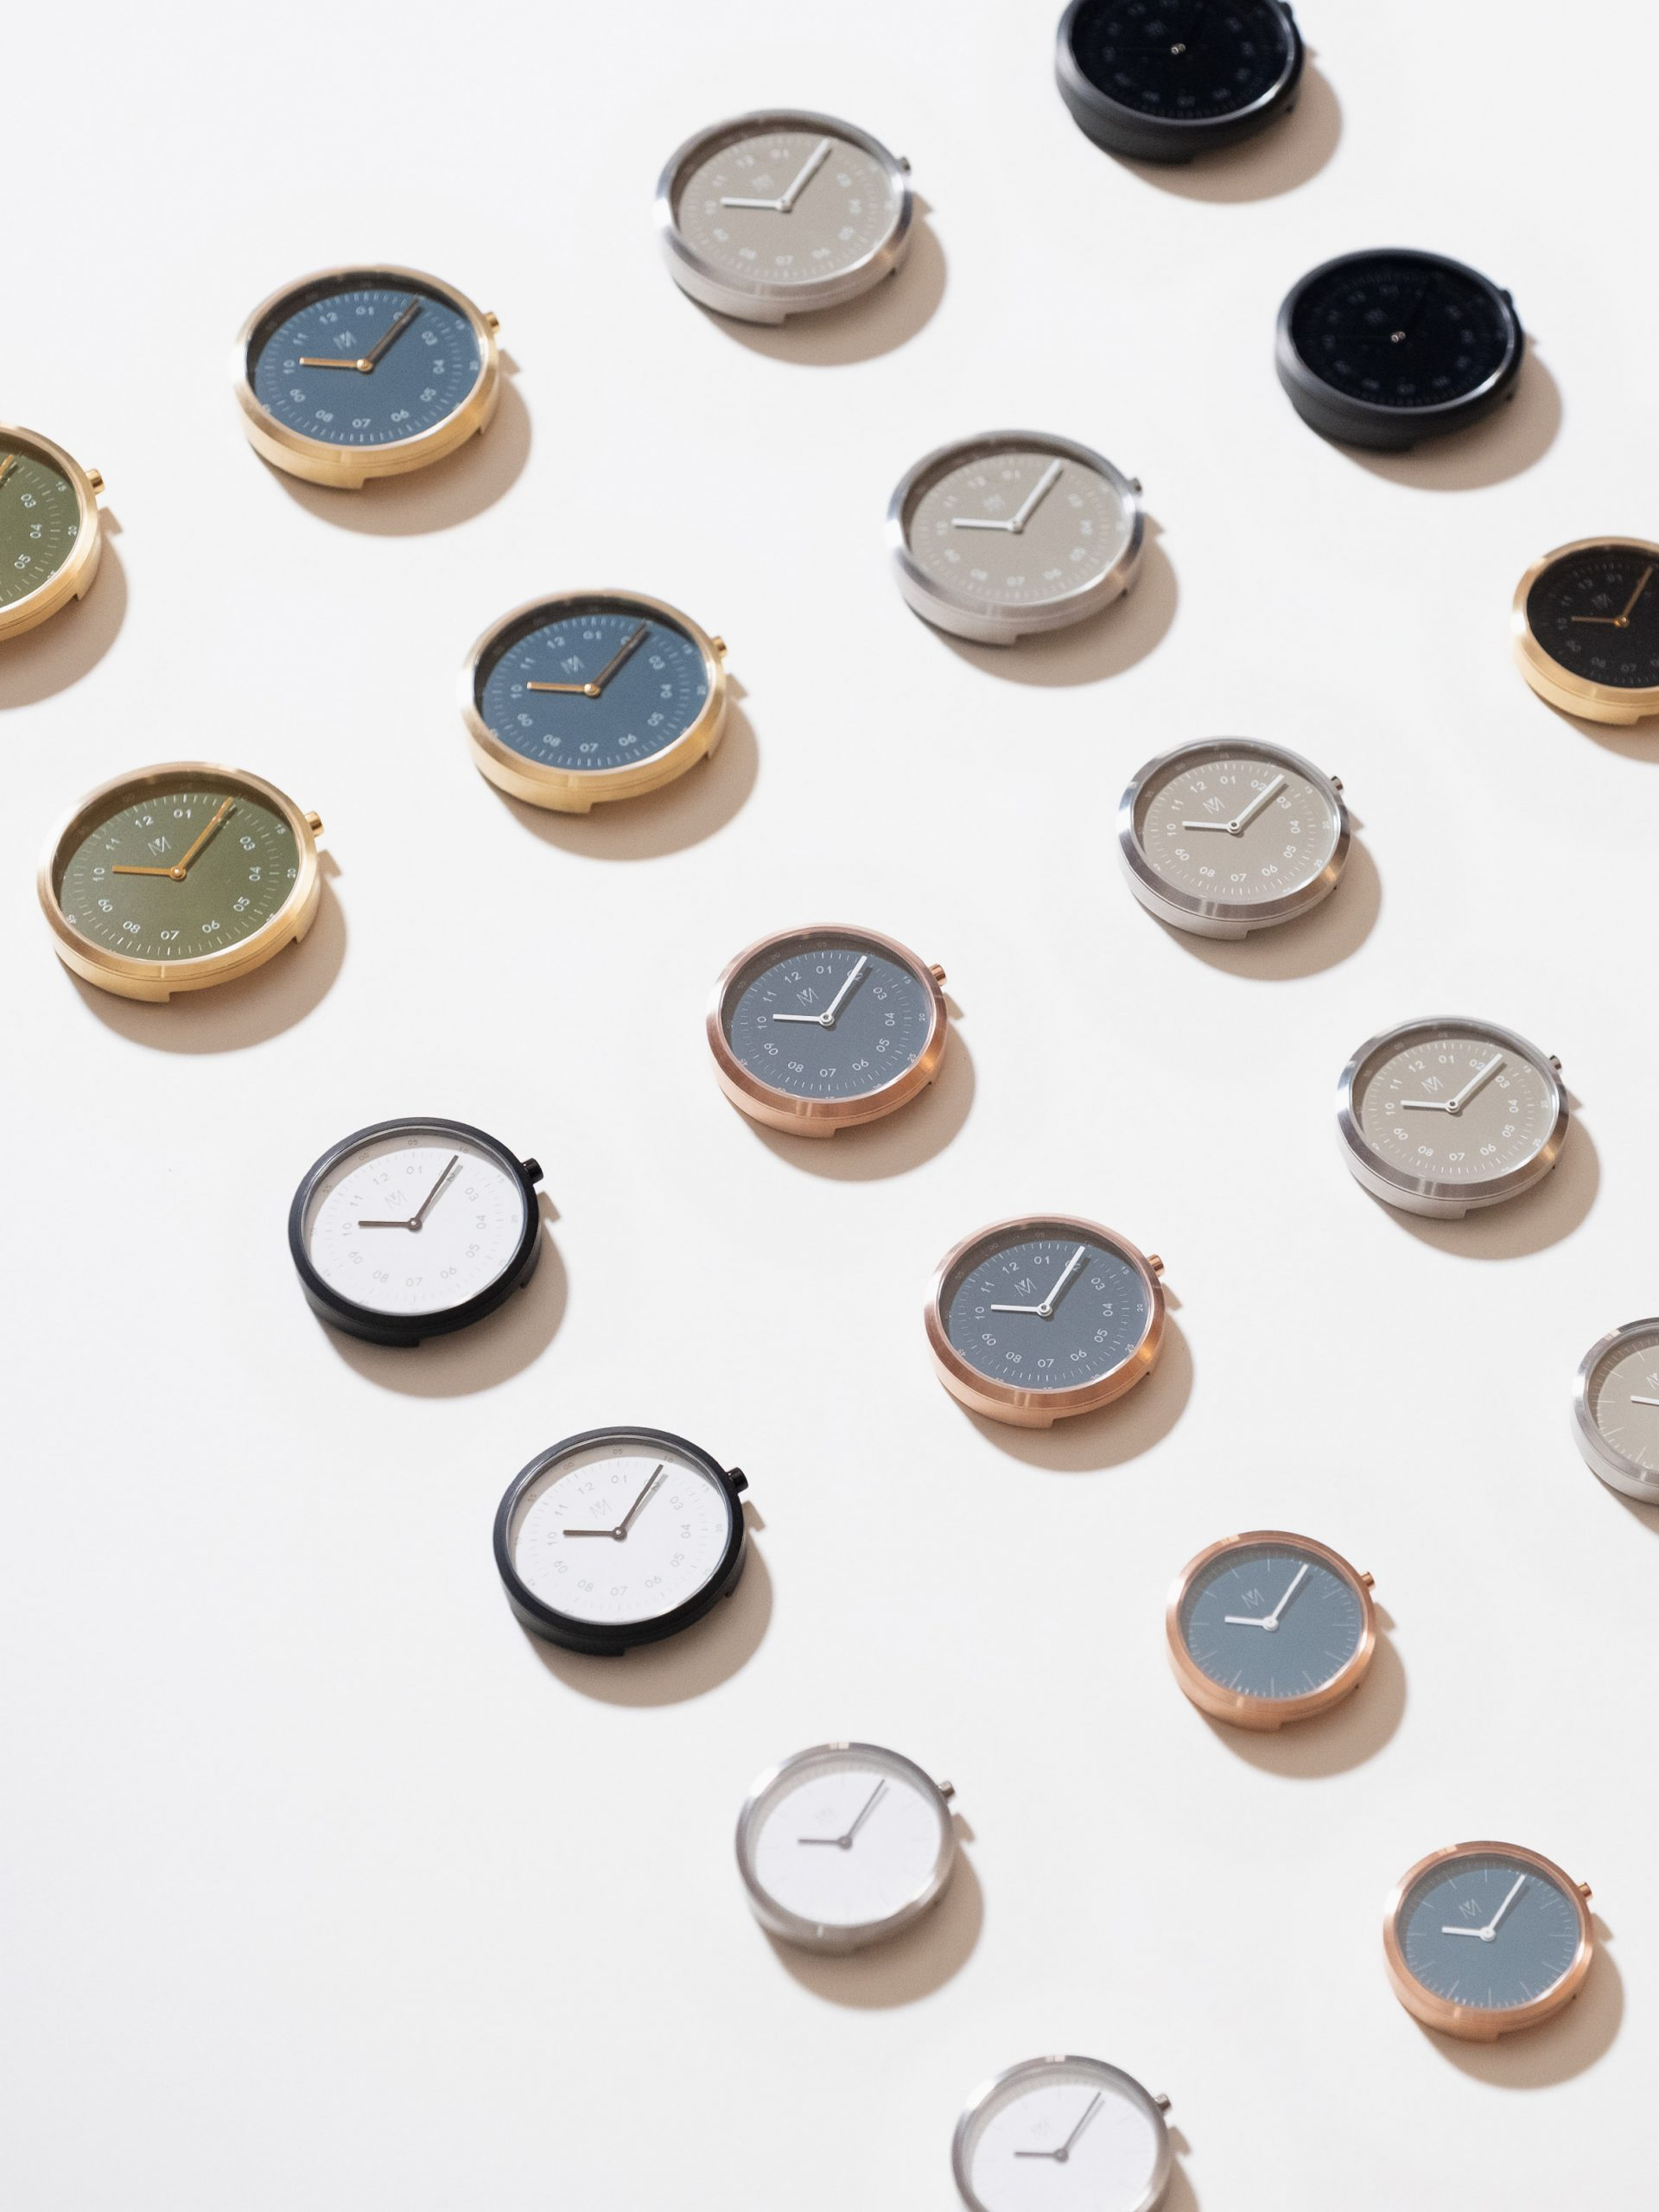 Artisan series of watches by Maven